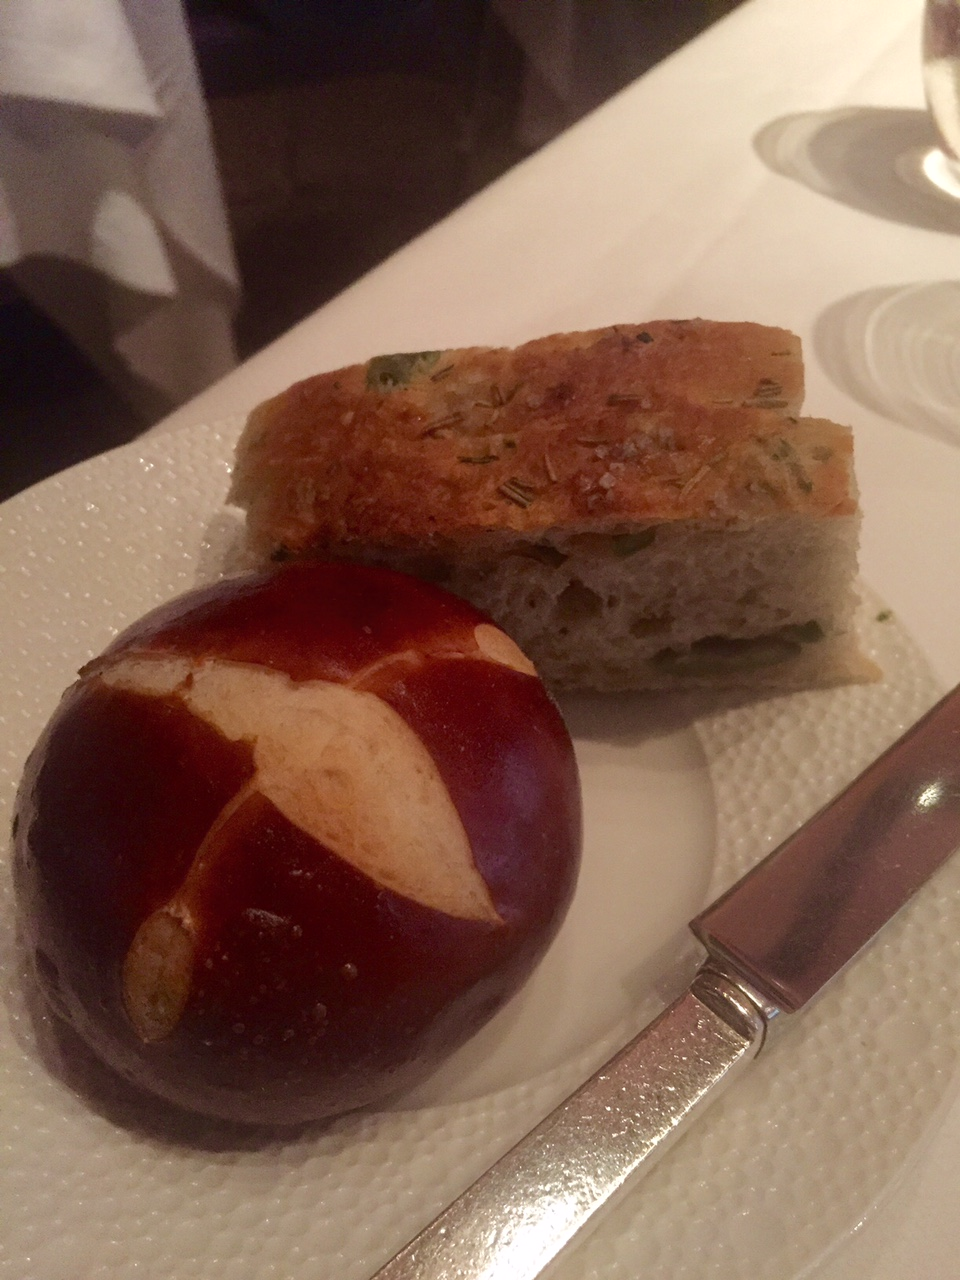 Hungry Panda  Dinner at Le Bernardin in NYC Pretzel roll and foccacia with olives  Two of the incredible breads we  tried  I tried not to OD because there were many bread options